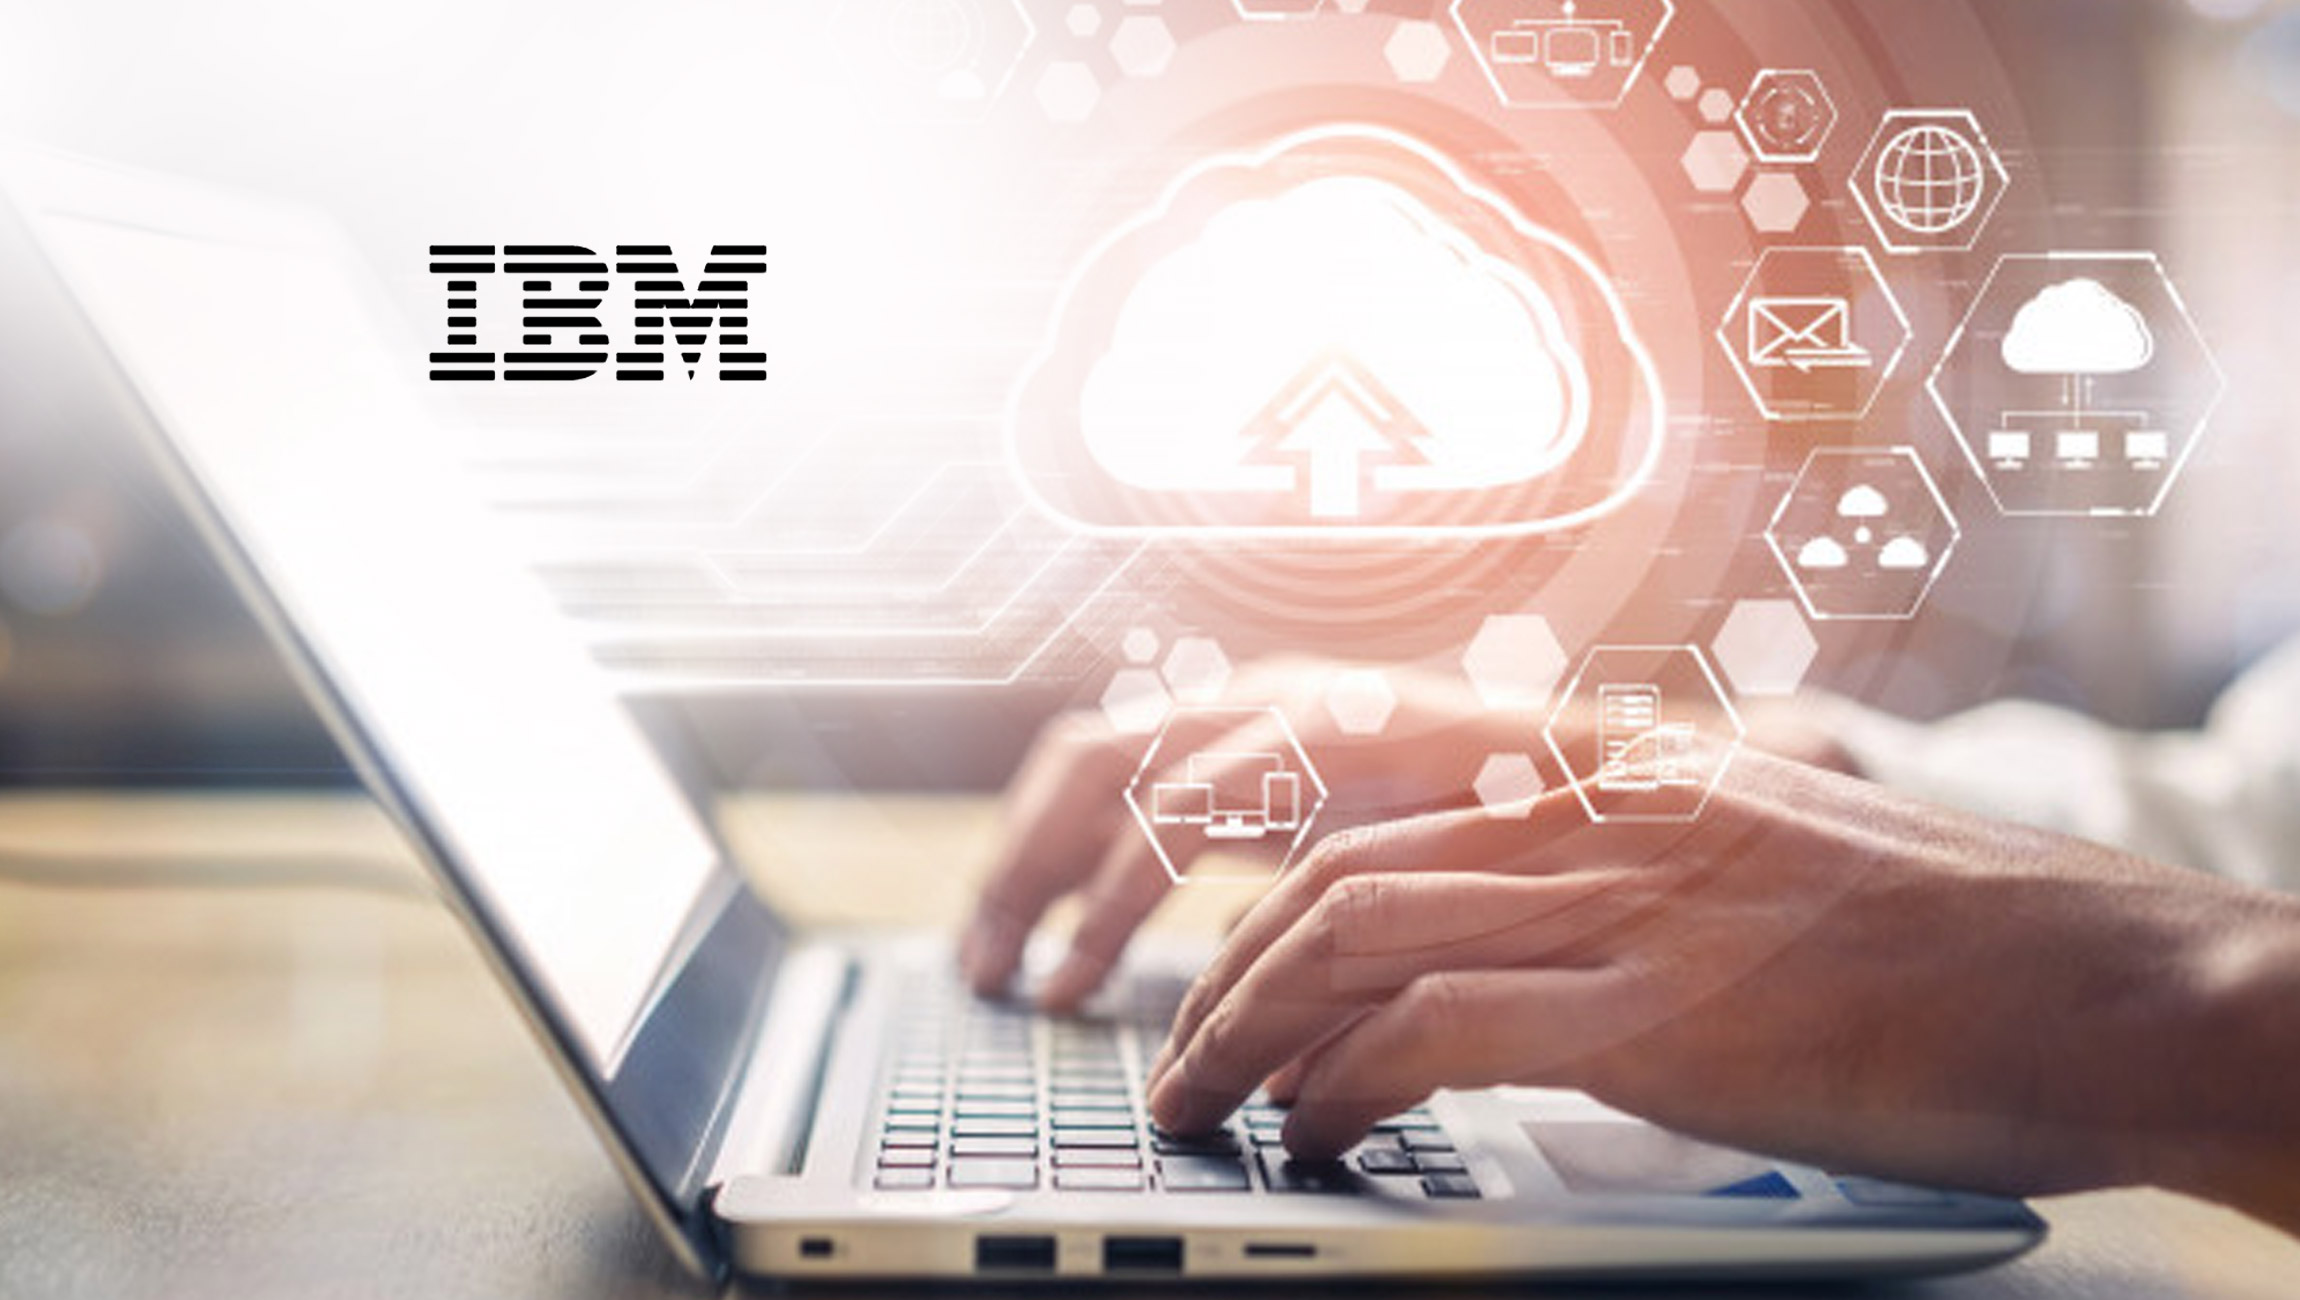 IBM, Red Hat and Cobuilder Spearhead Development of OpenBuilt to Accelerate Digital Transformation across the Construction Industry with a Hybrid Cloud Approach